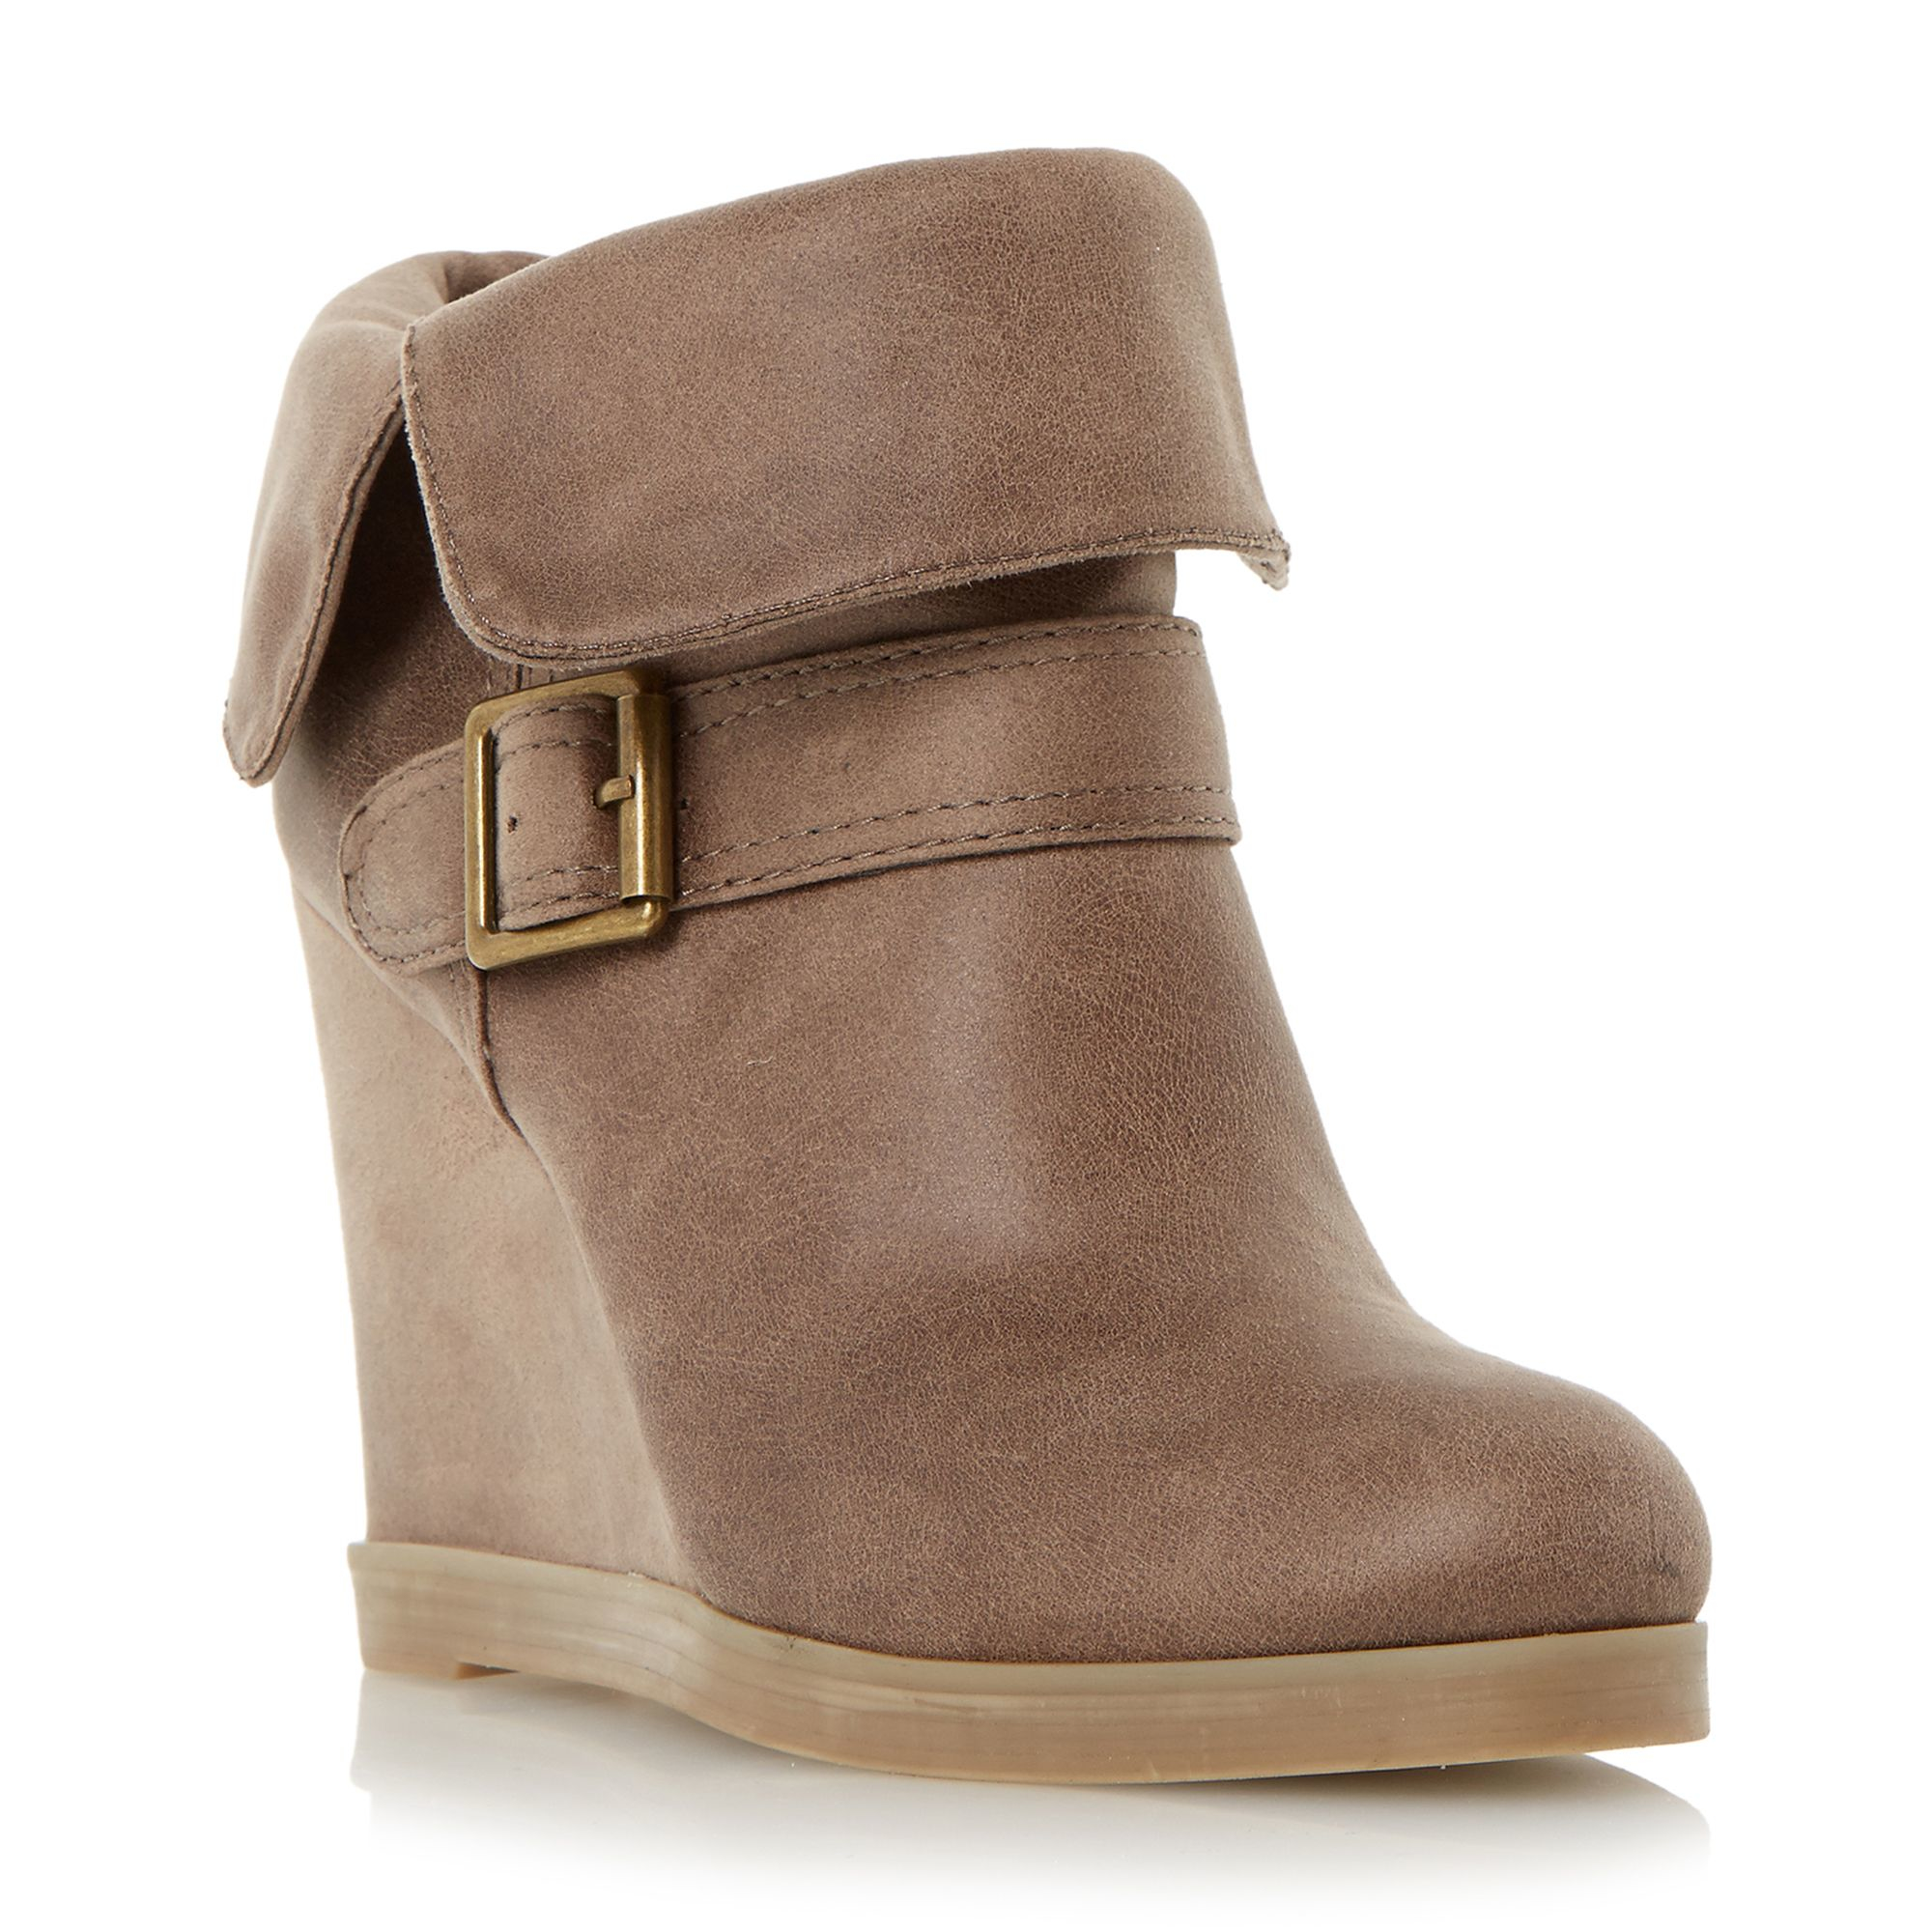 Dune Pindar Fold Down Wedge Heel Ankle Boots in Brown | Lyst